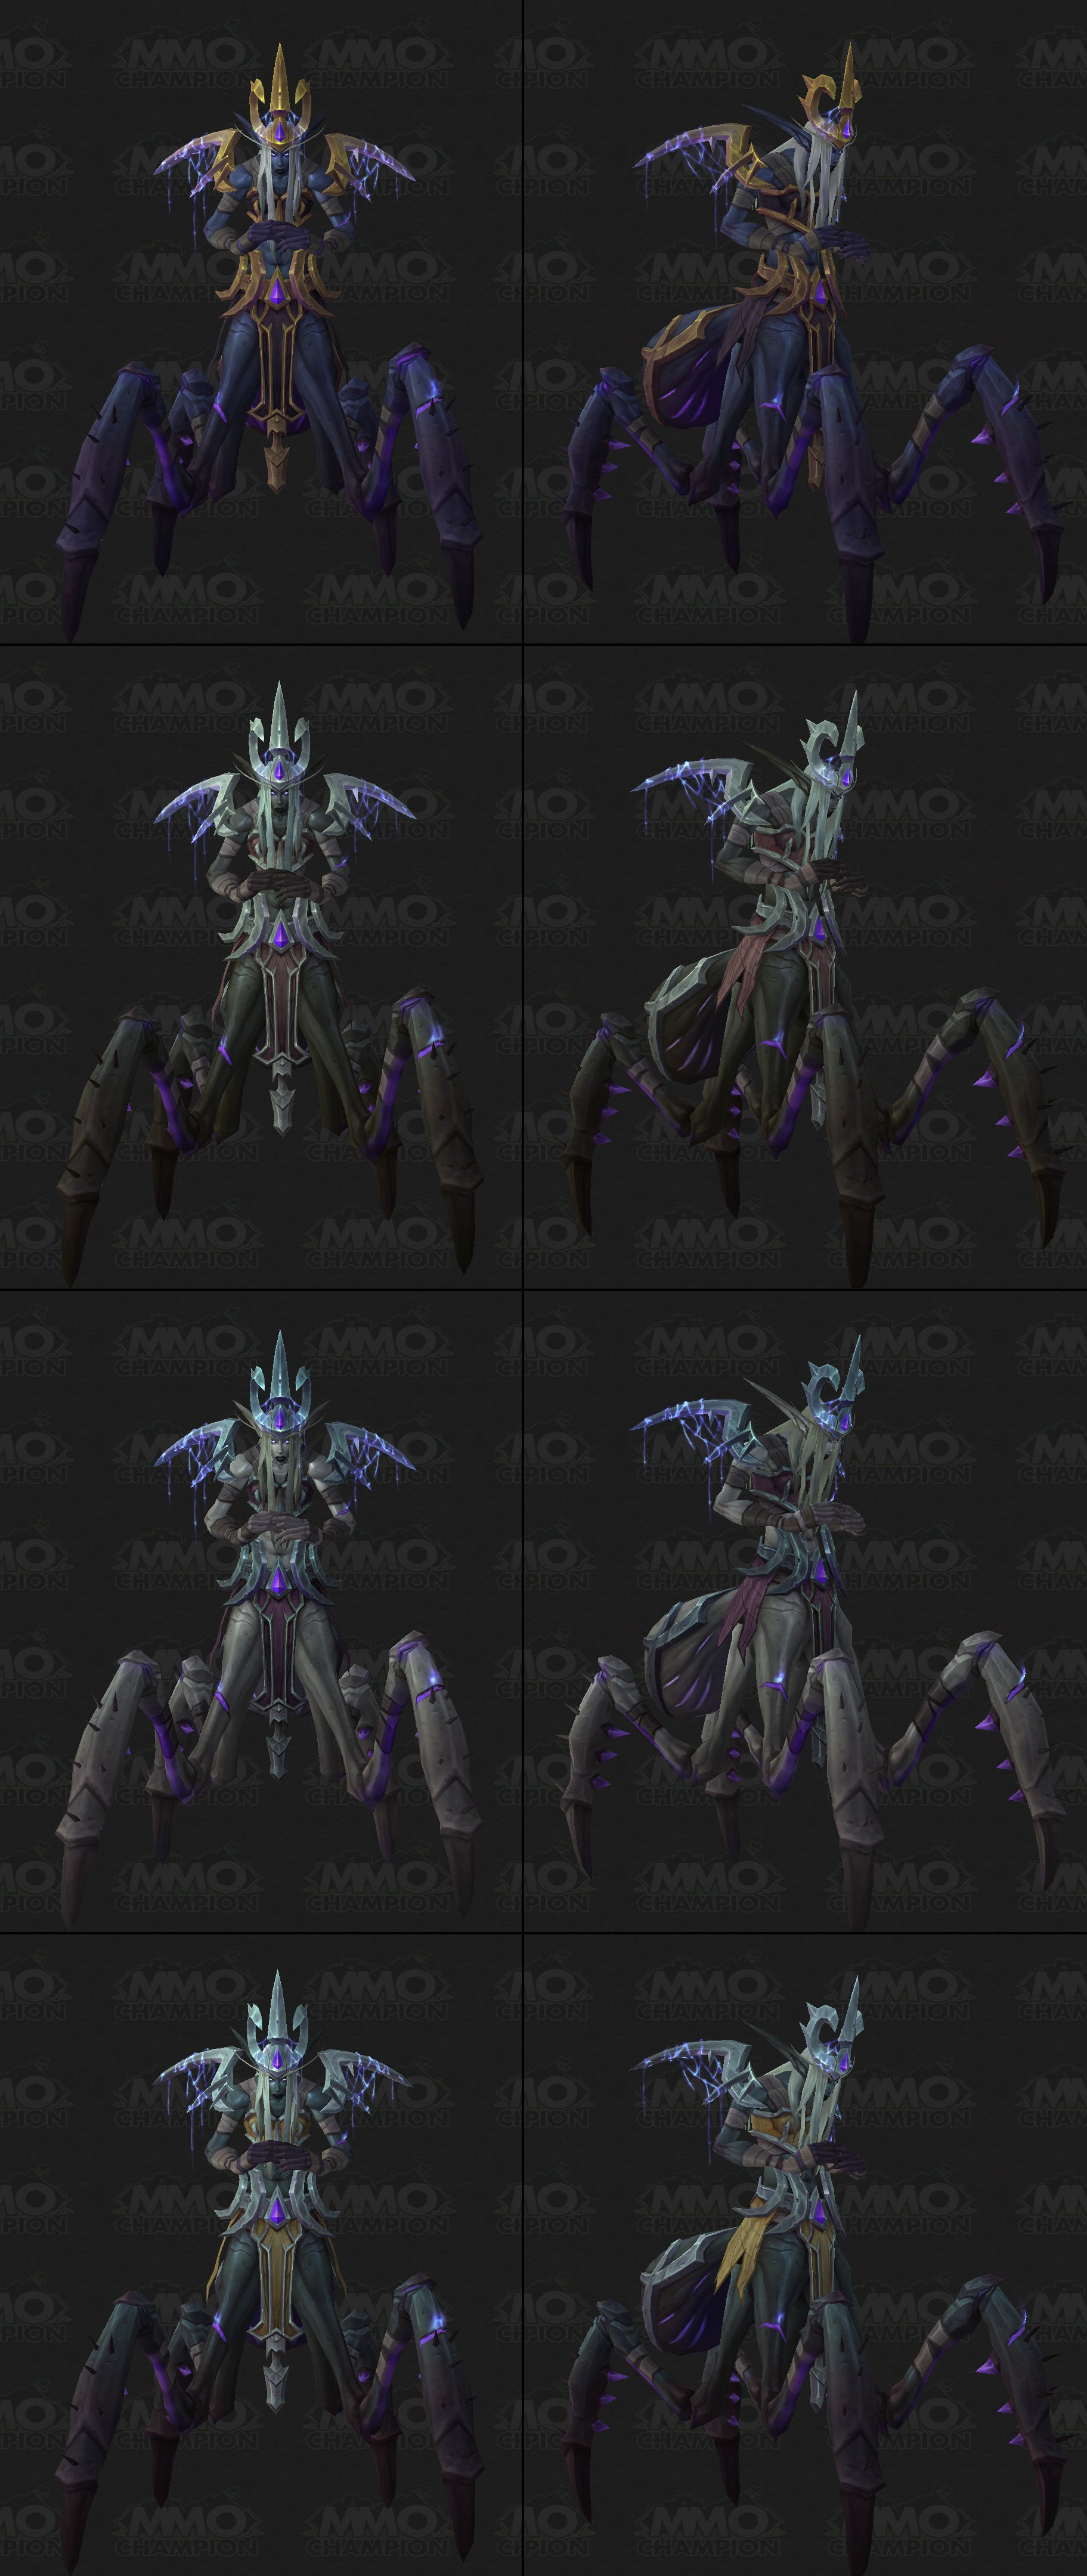 Night elves and dark-magic(spoiler) - World of Warcraft Forums